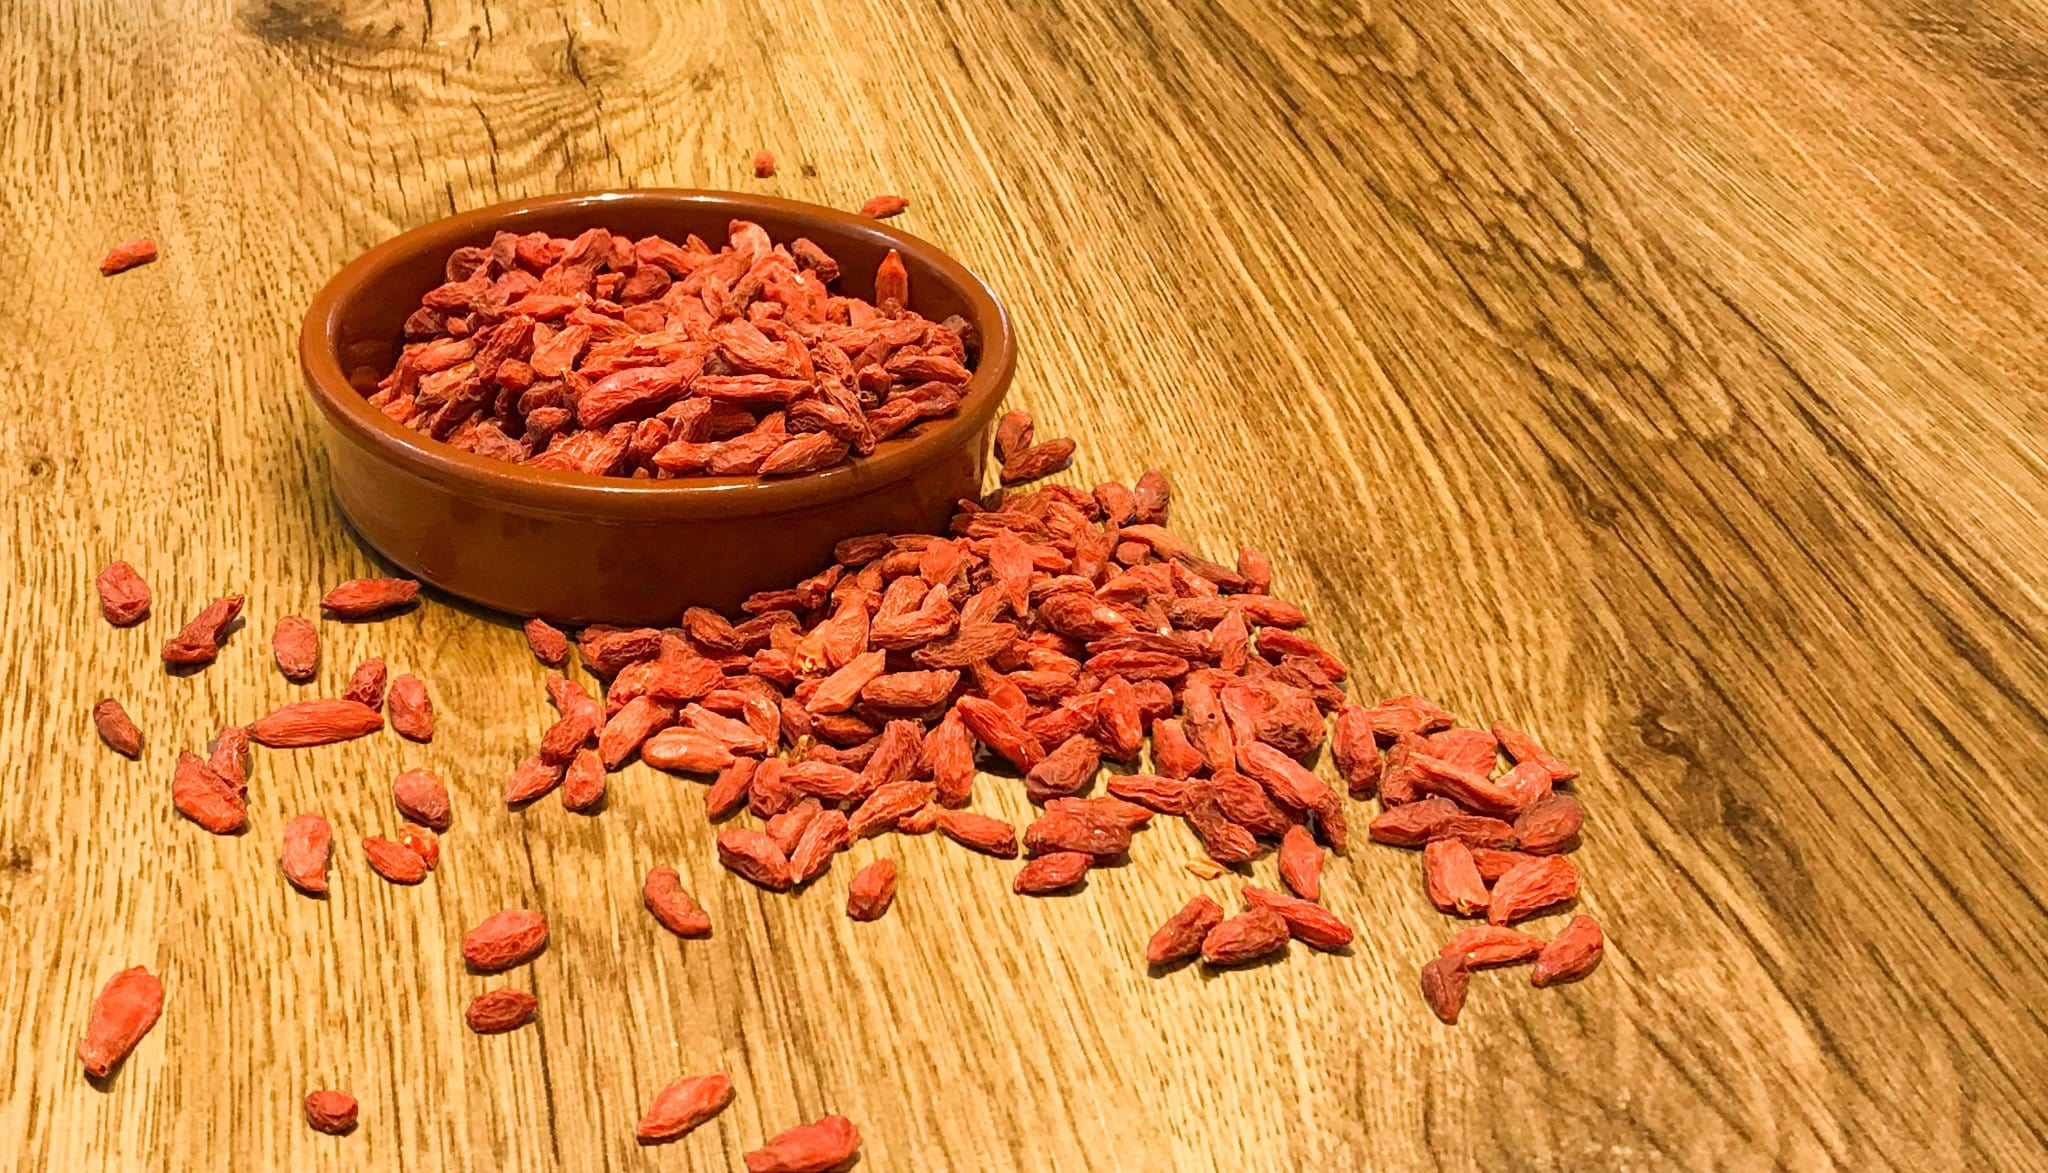 goji berry berries whole foods wholefoods health foods vegan plant based vegetarian diet superfood